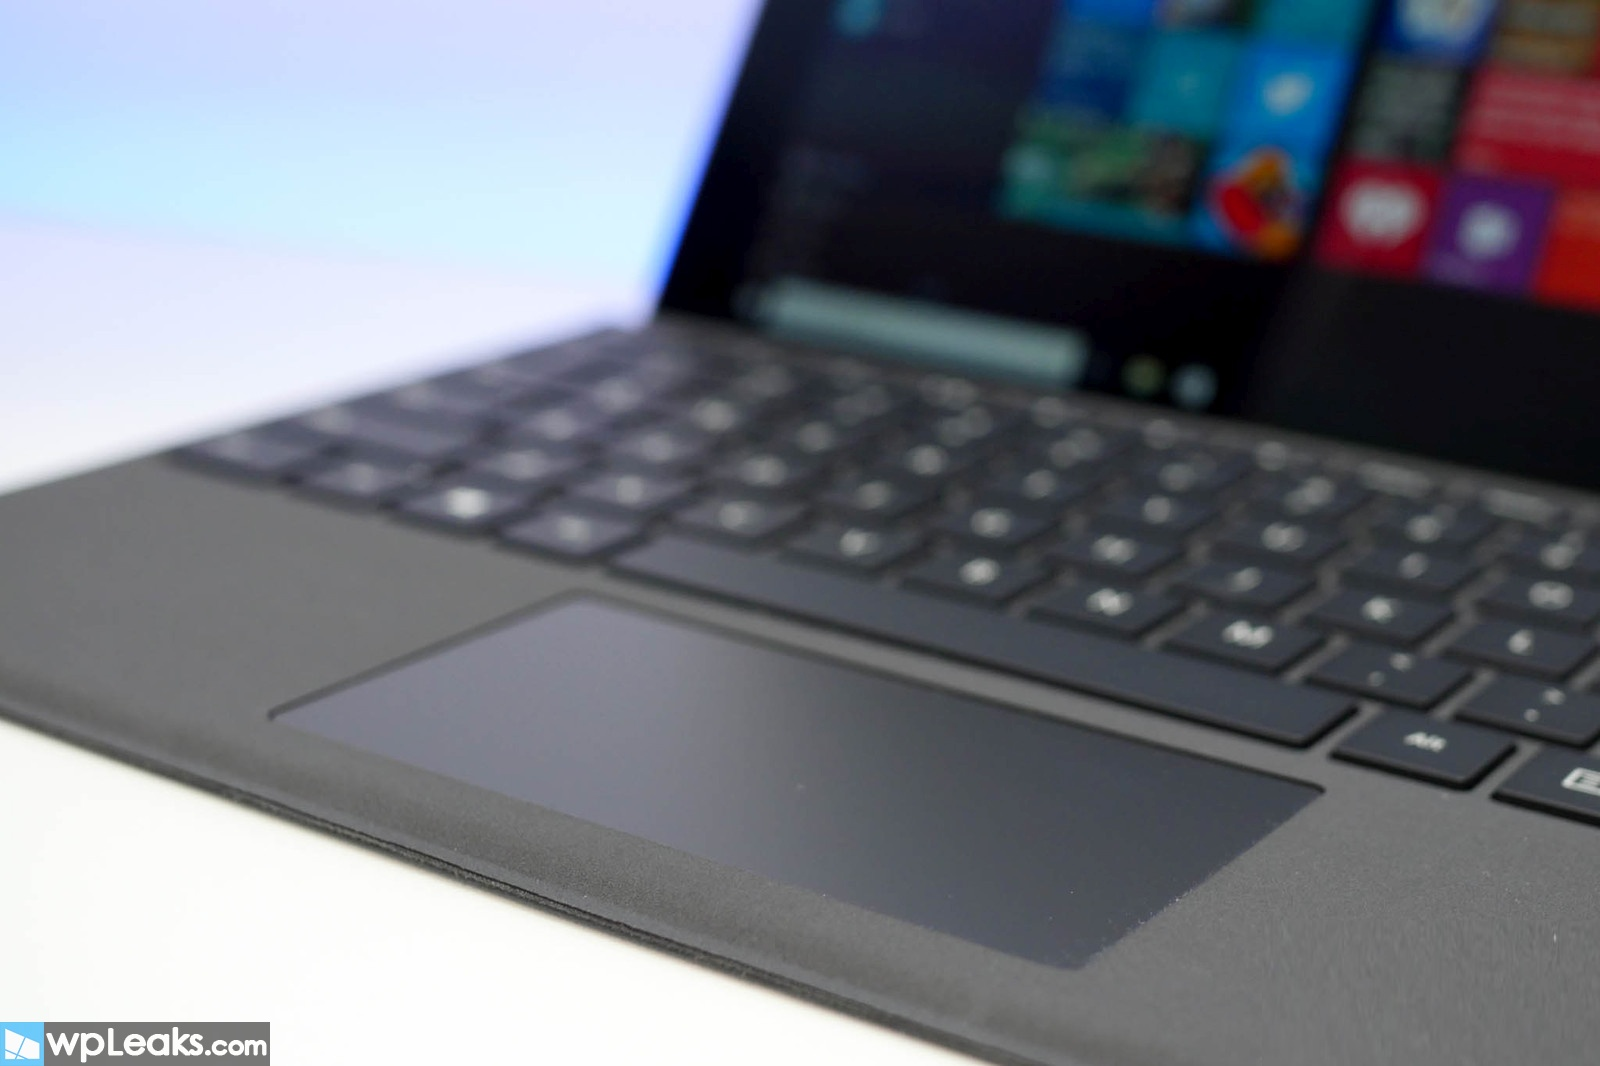 surface-pro-4-type-cover-trackpad